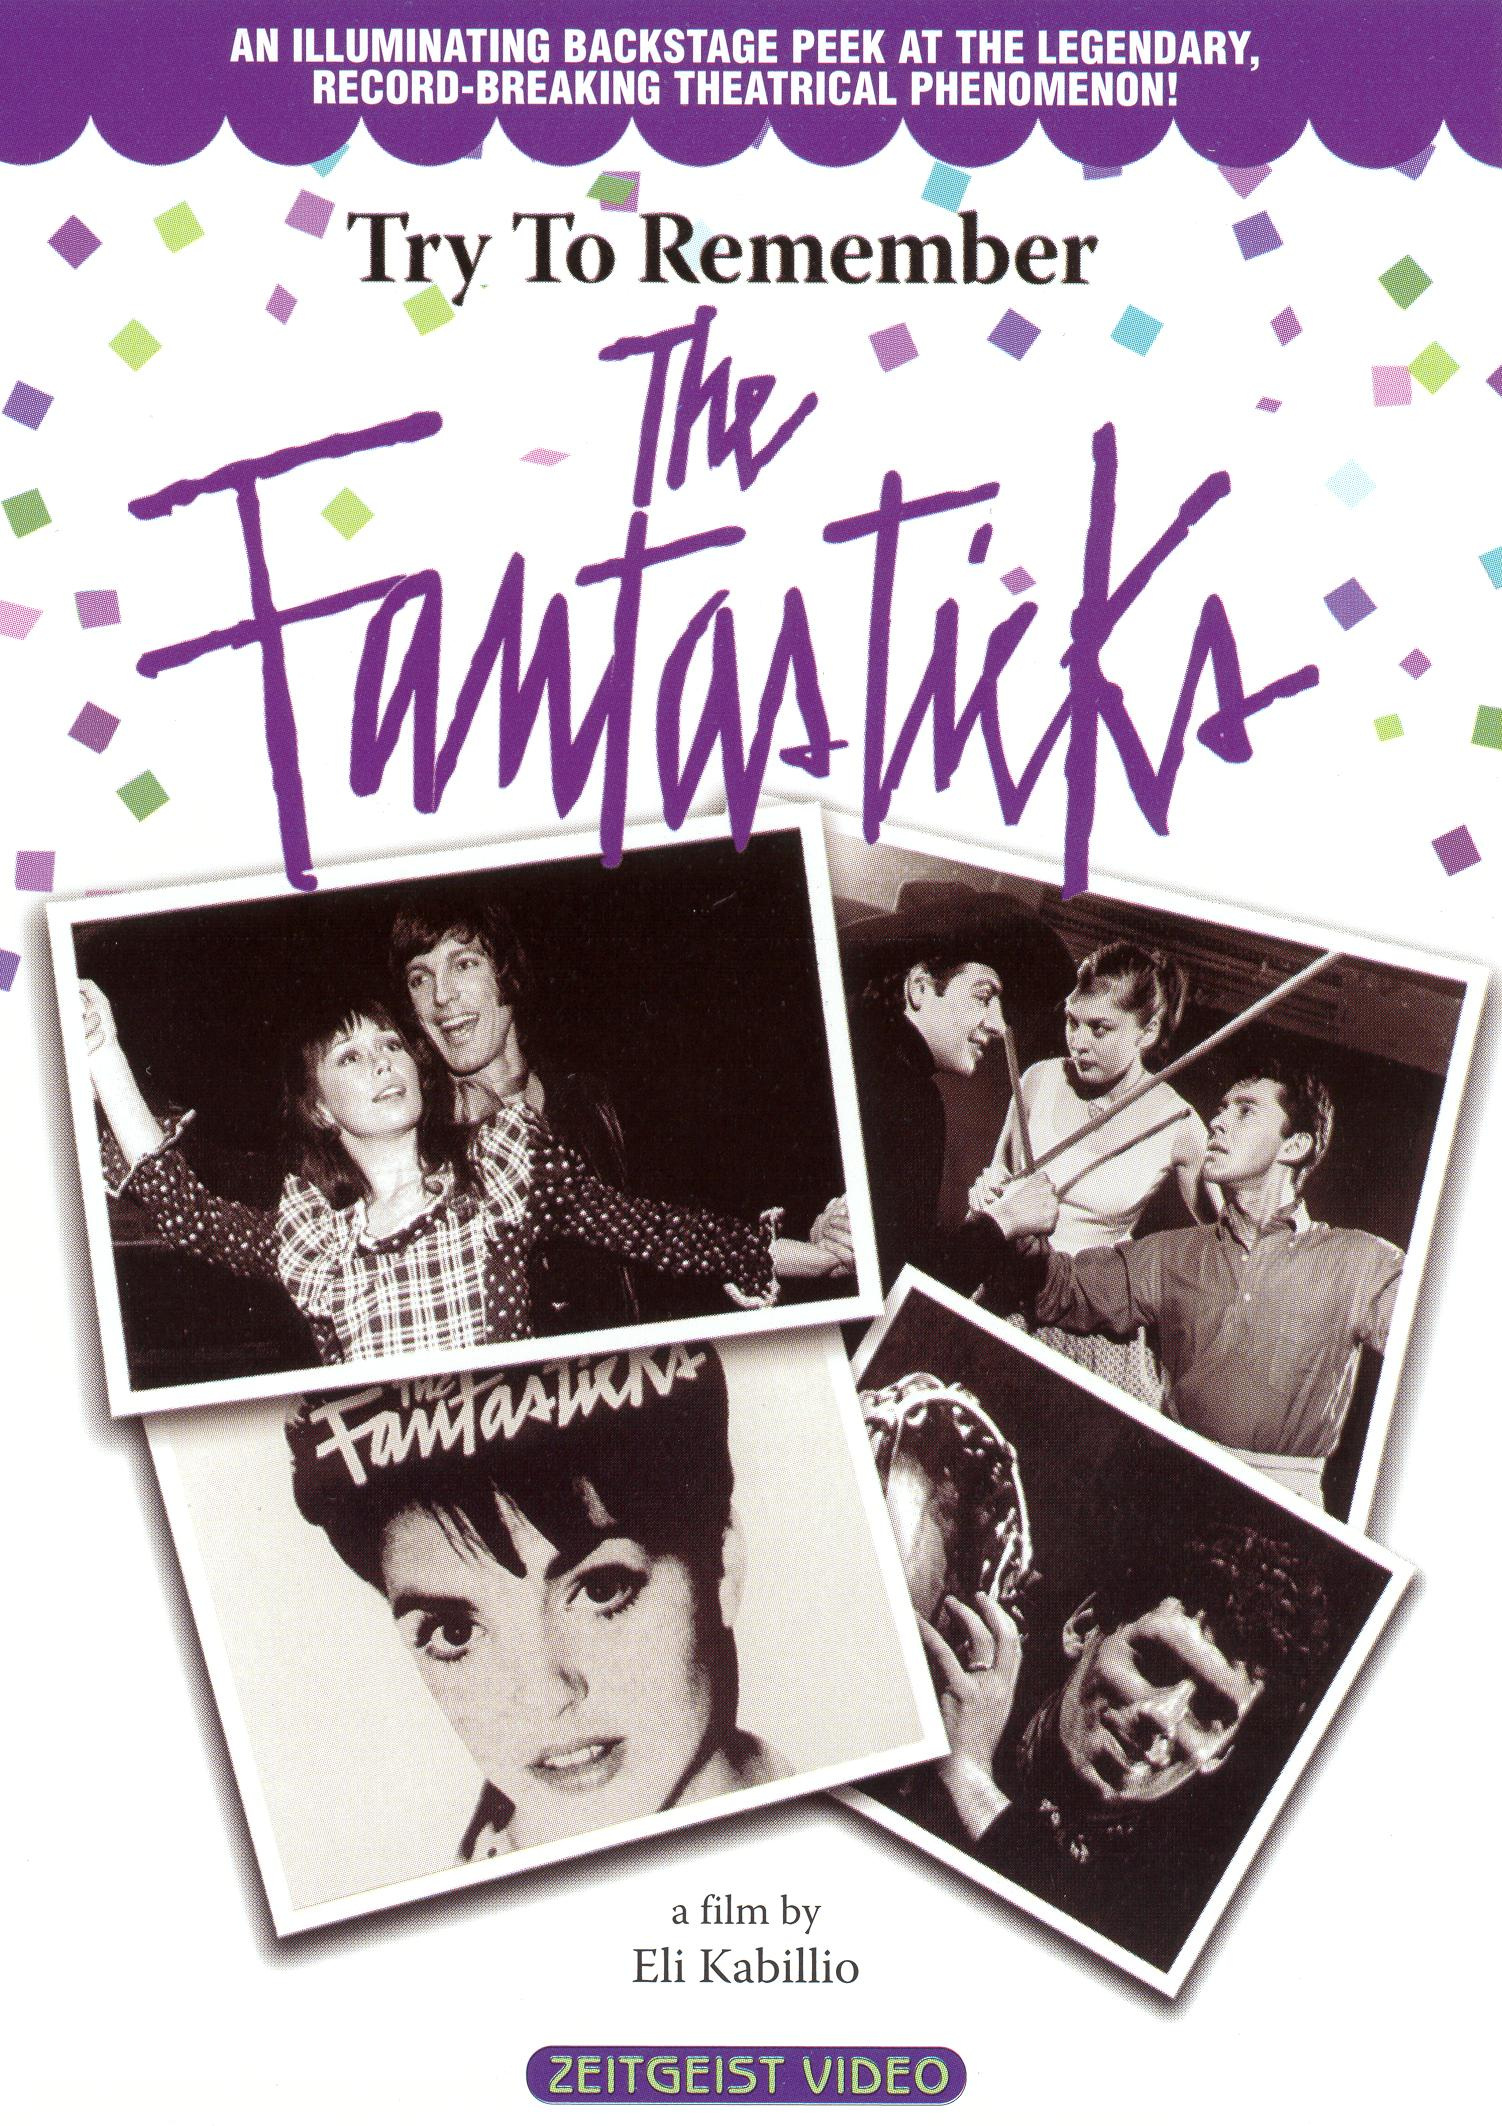 Try To Remember: The Fantasticks